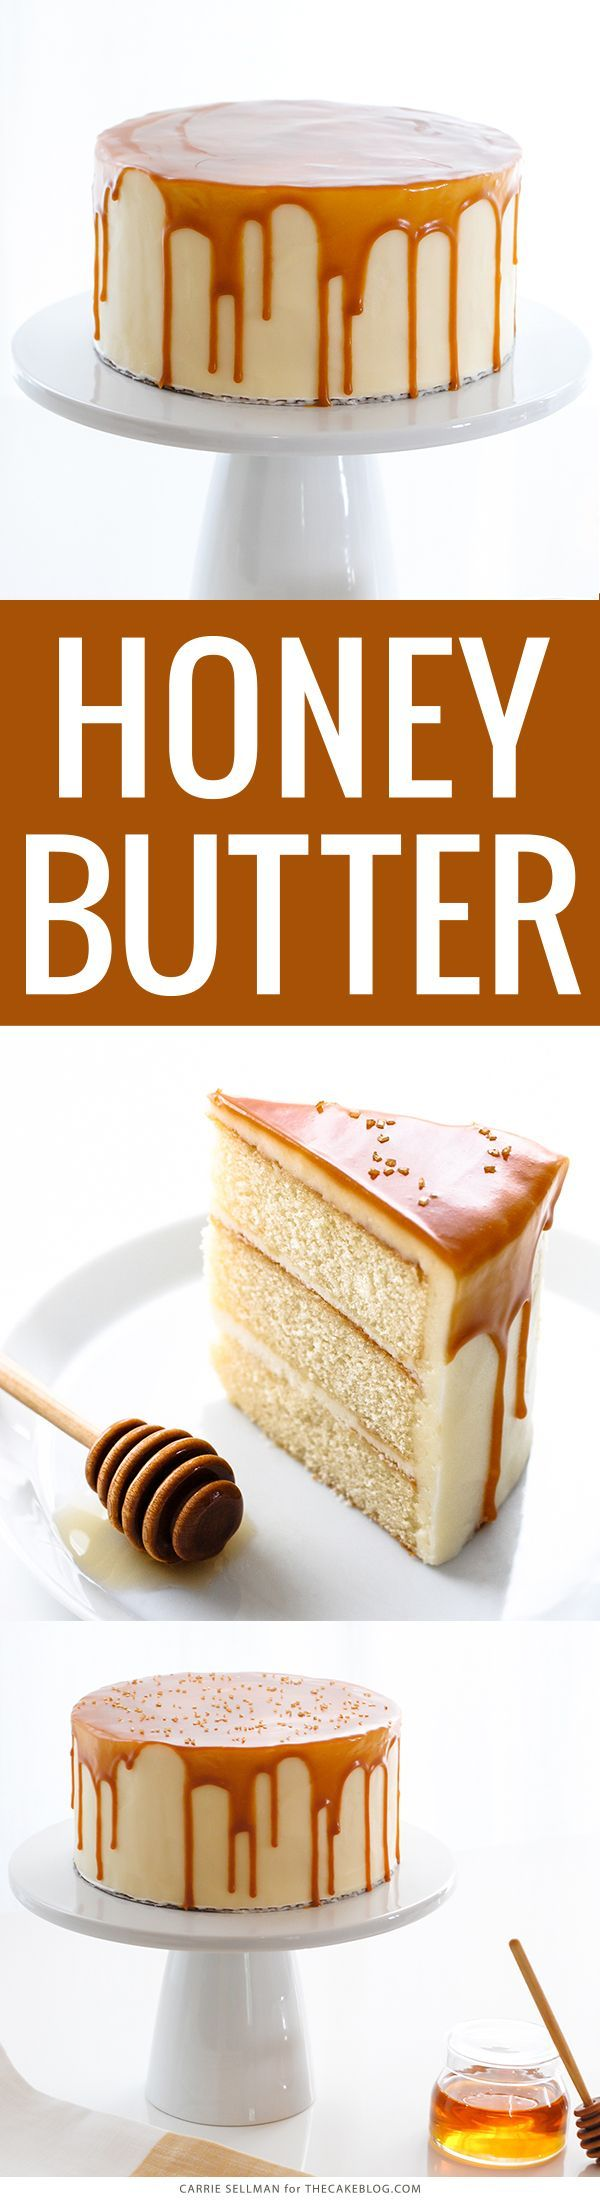 Honey Butter Cake   honey cake with honey cream cheese frosting topped with a honey butterscotch glaze   by Carrie Sellman for TheCakeBlog.com